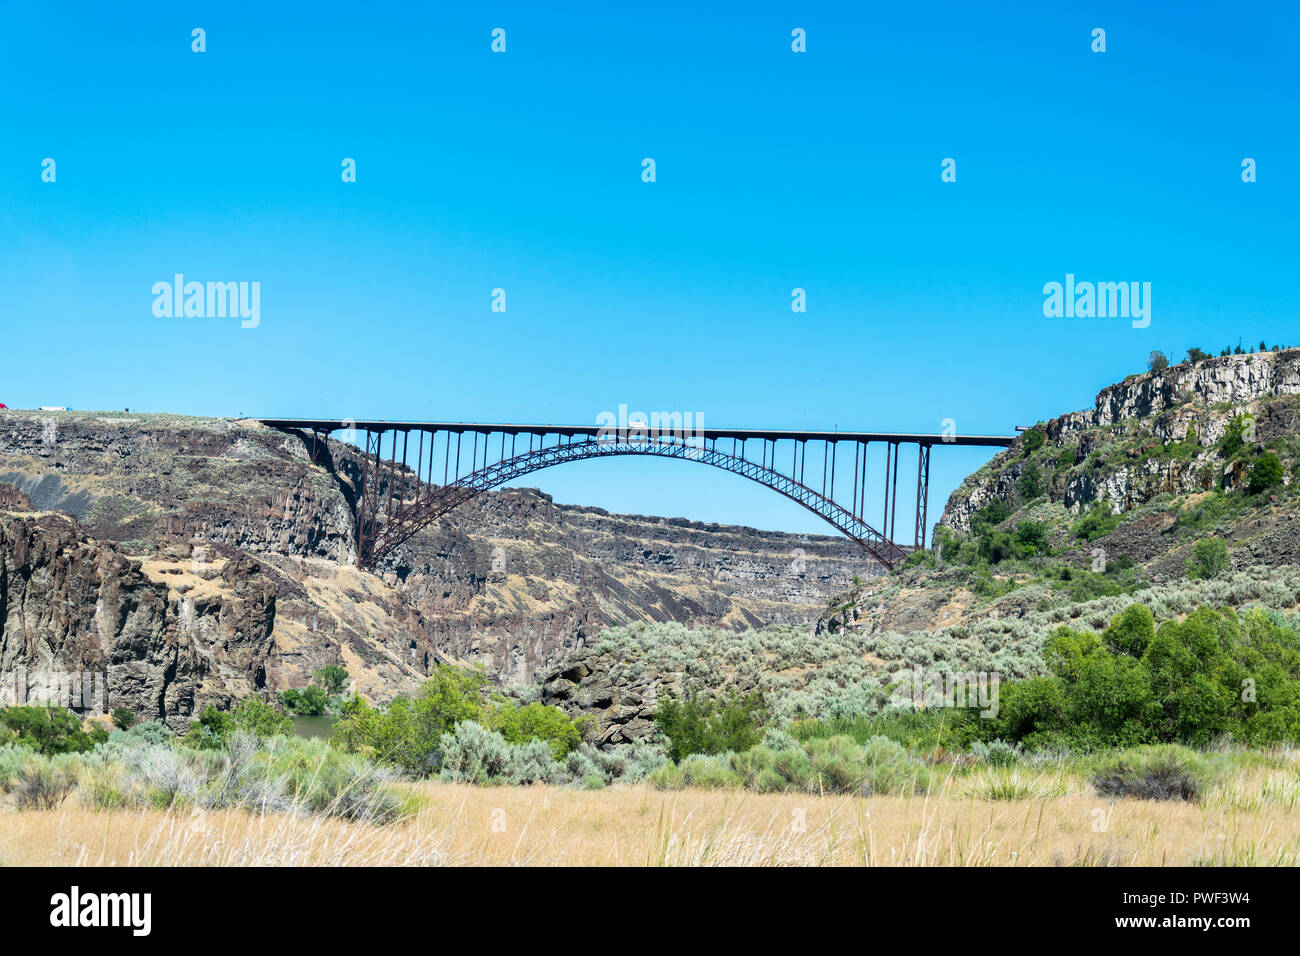 Truck driving over the Perrine bridge in Twin Falls, Idaho, United States of America - Stock Image